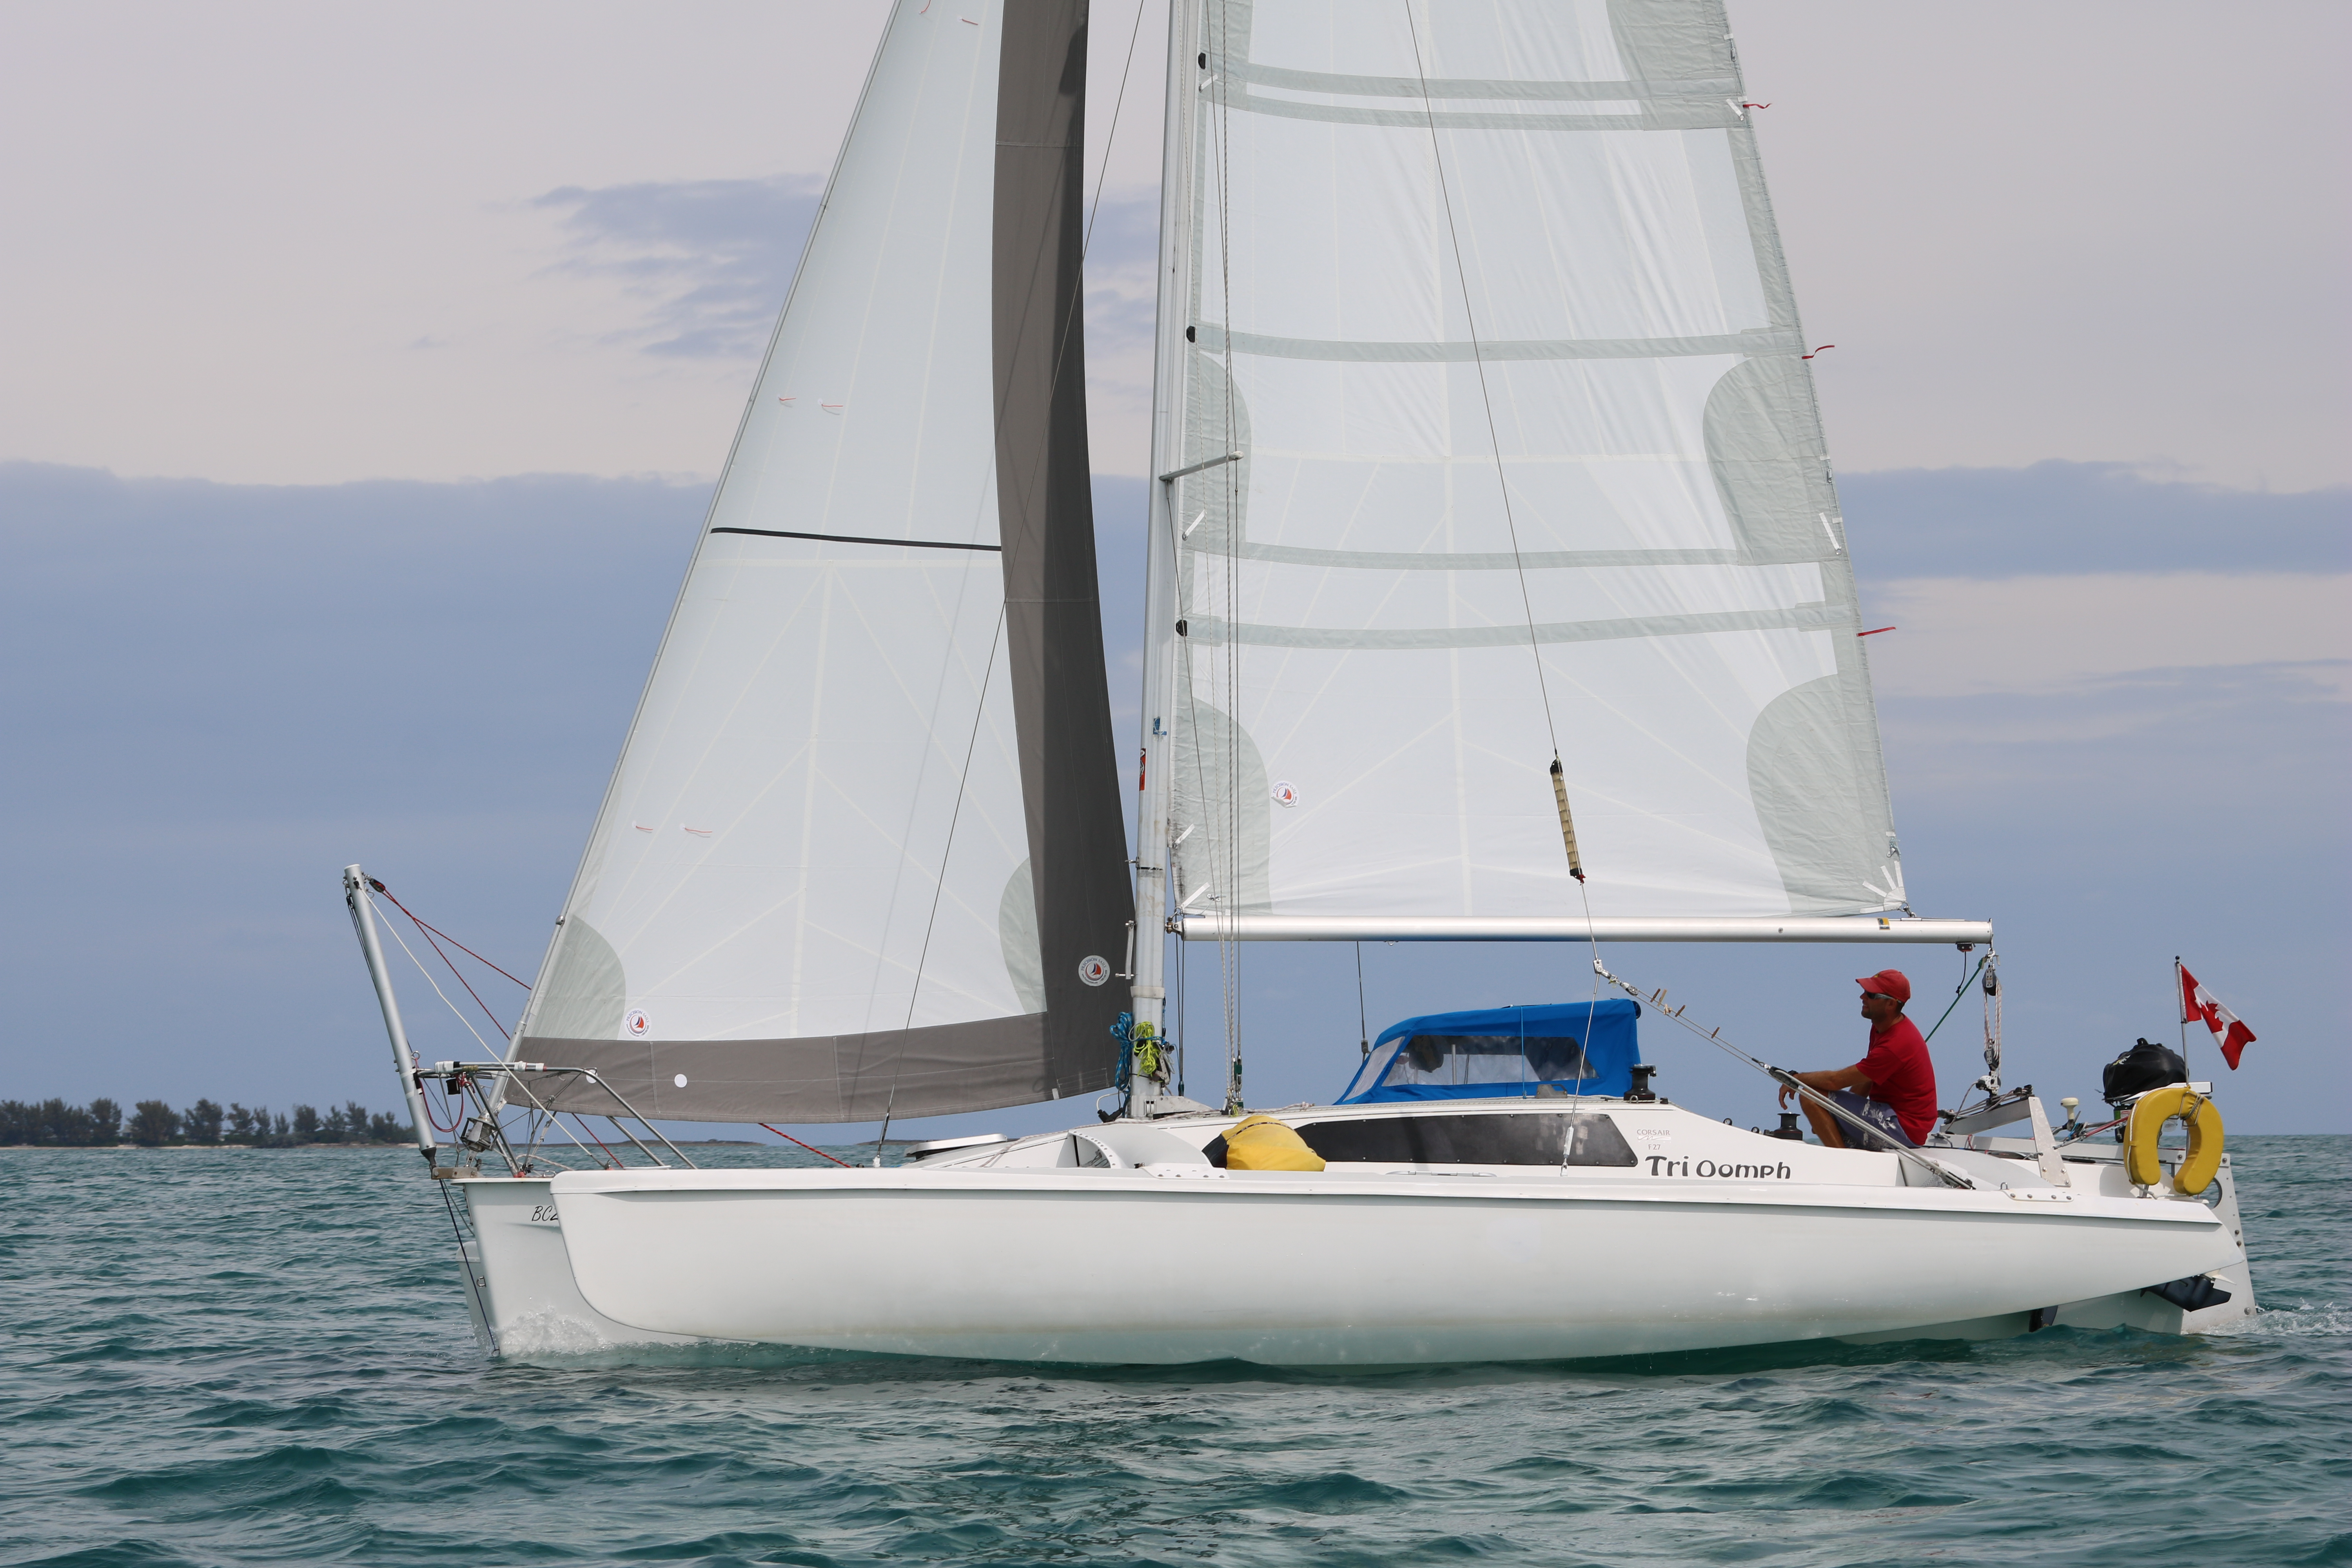 trioomph with sails